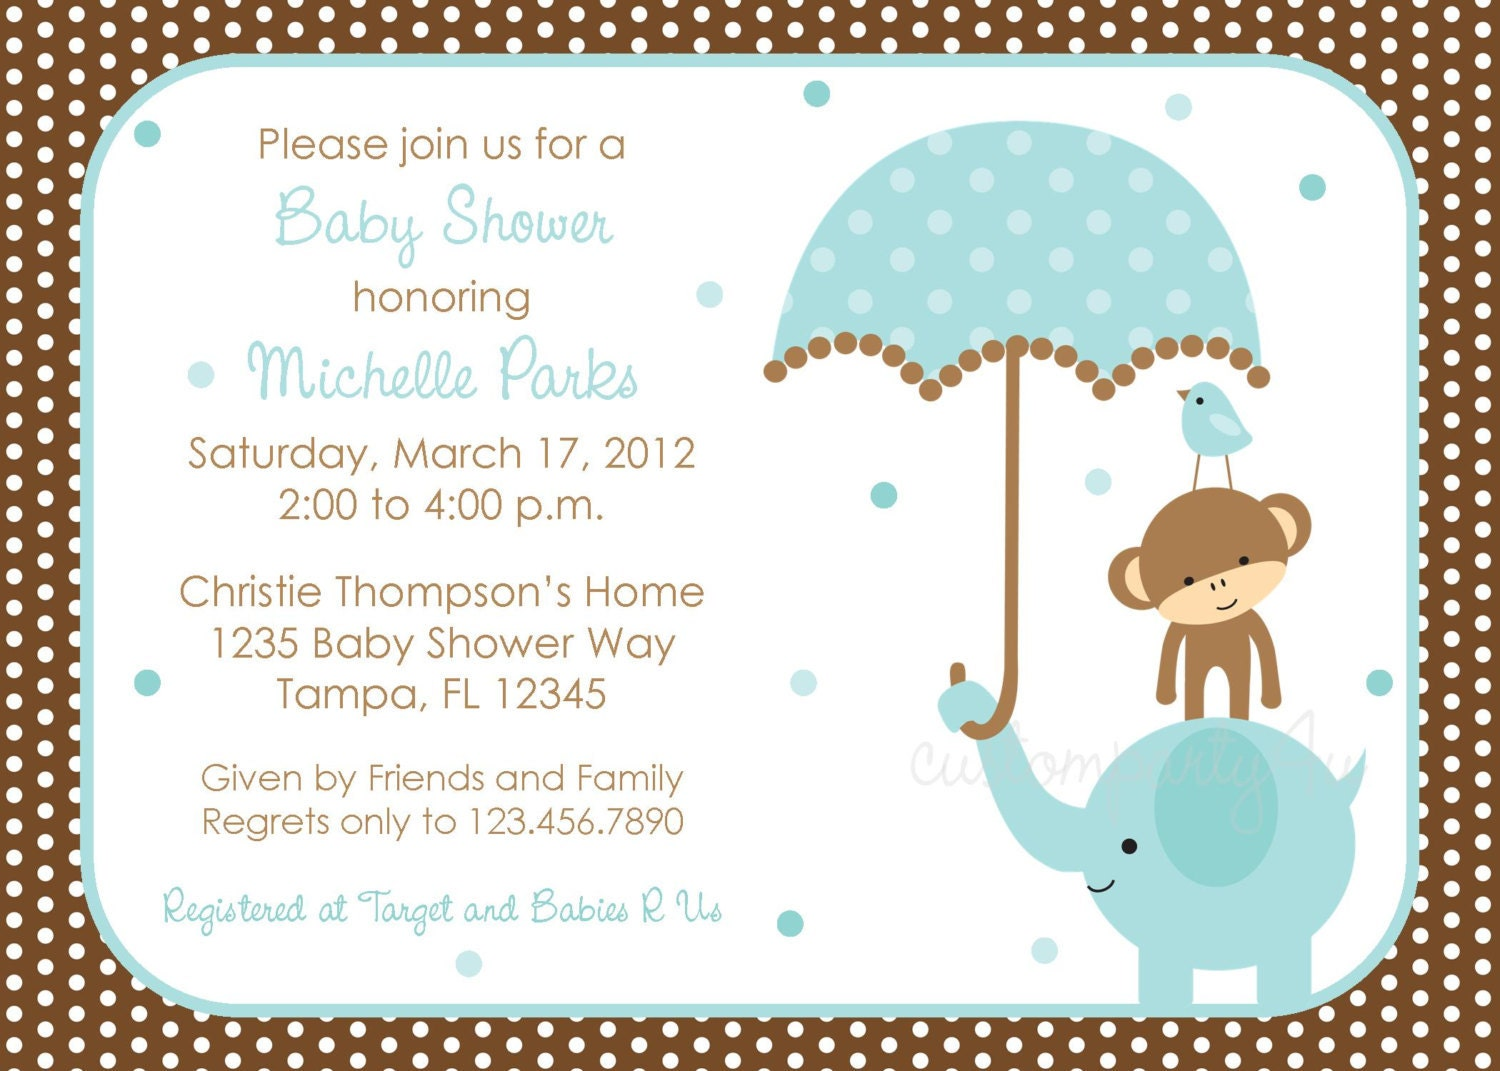 Baby Shower Invitations For A Boy can inspire you to create best invitation template